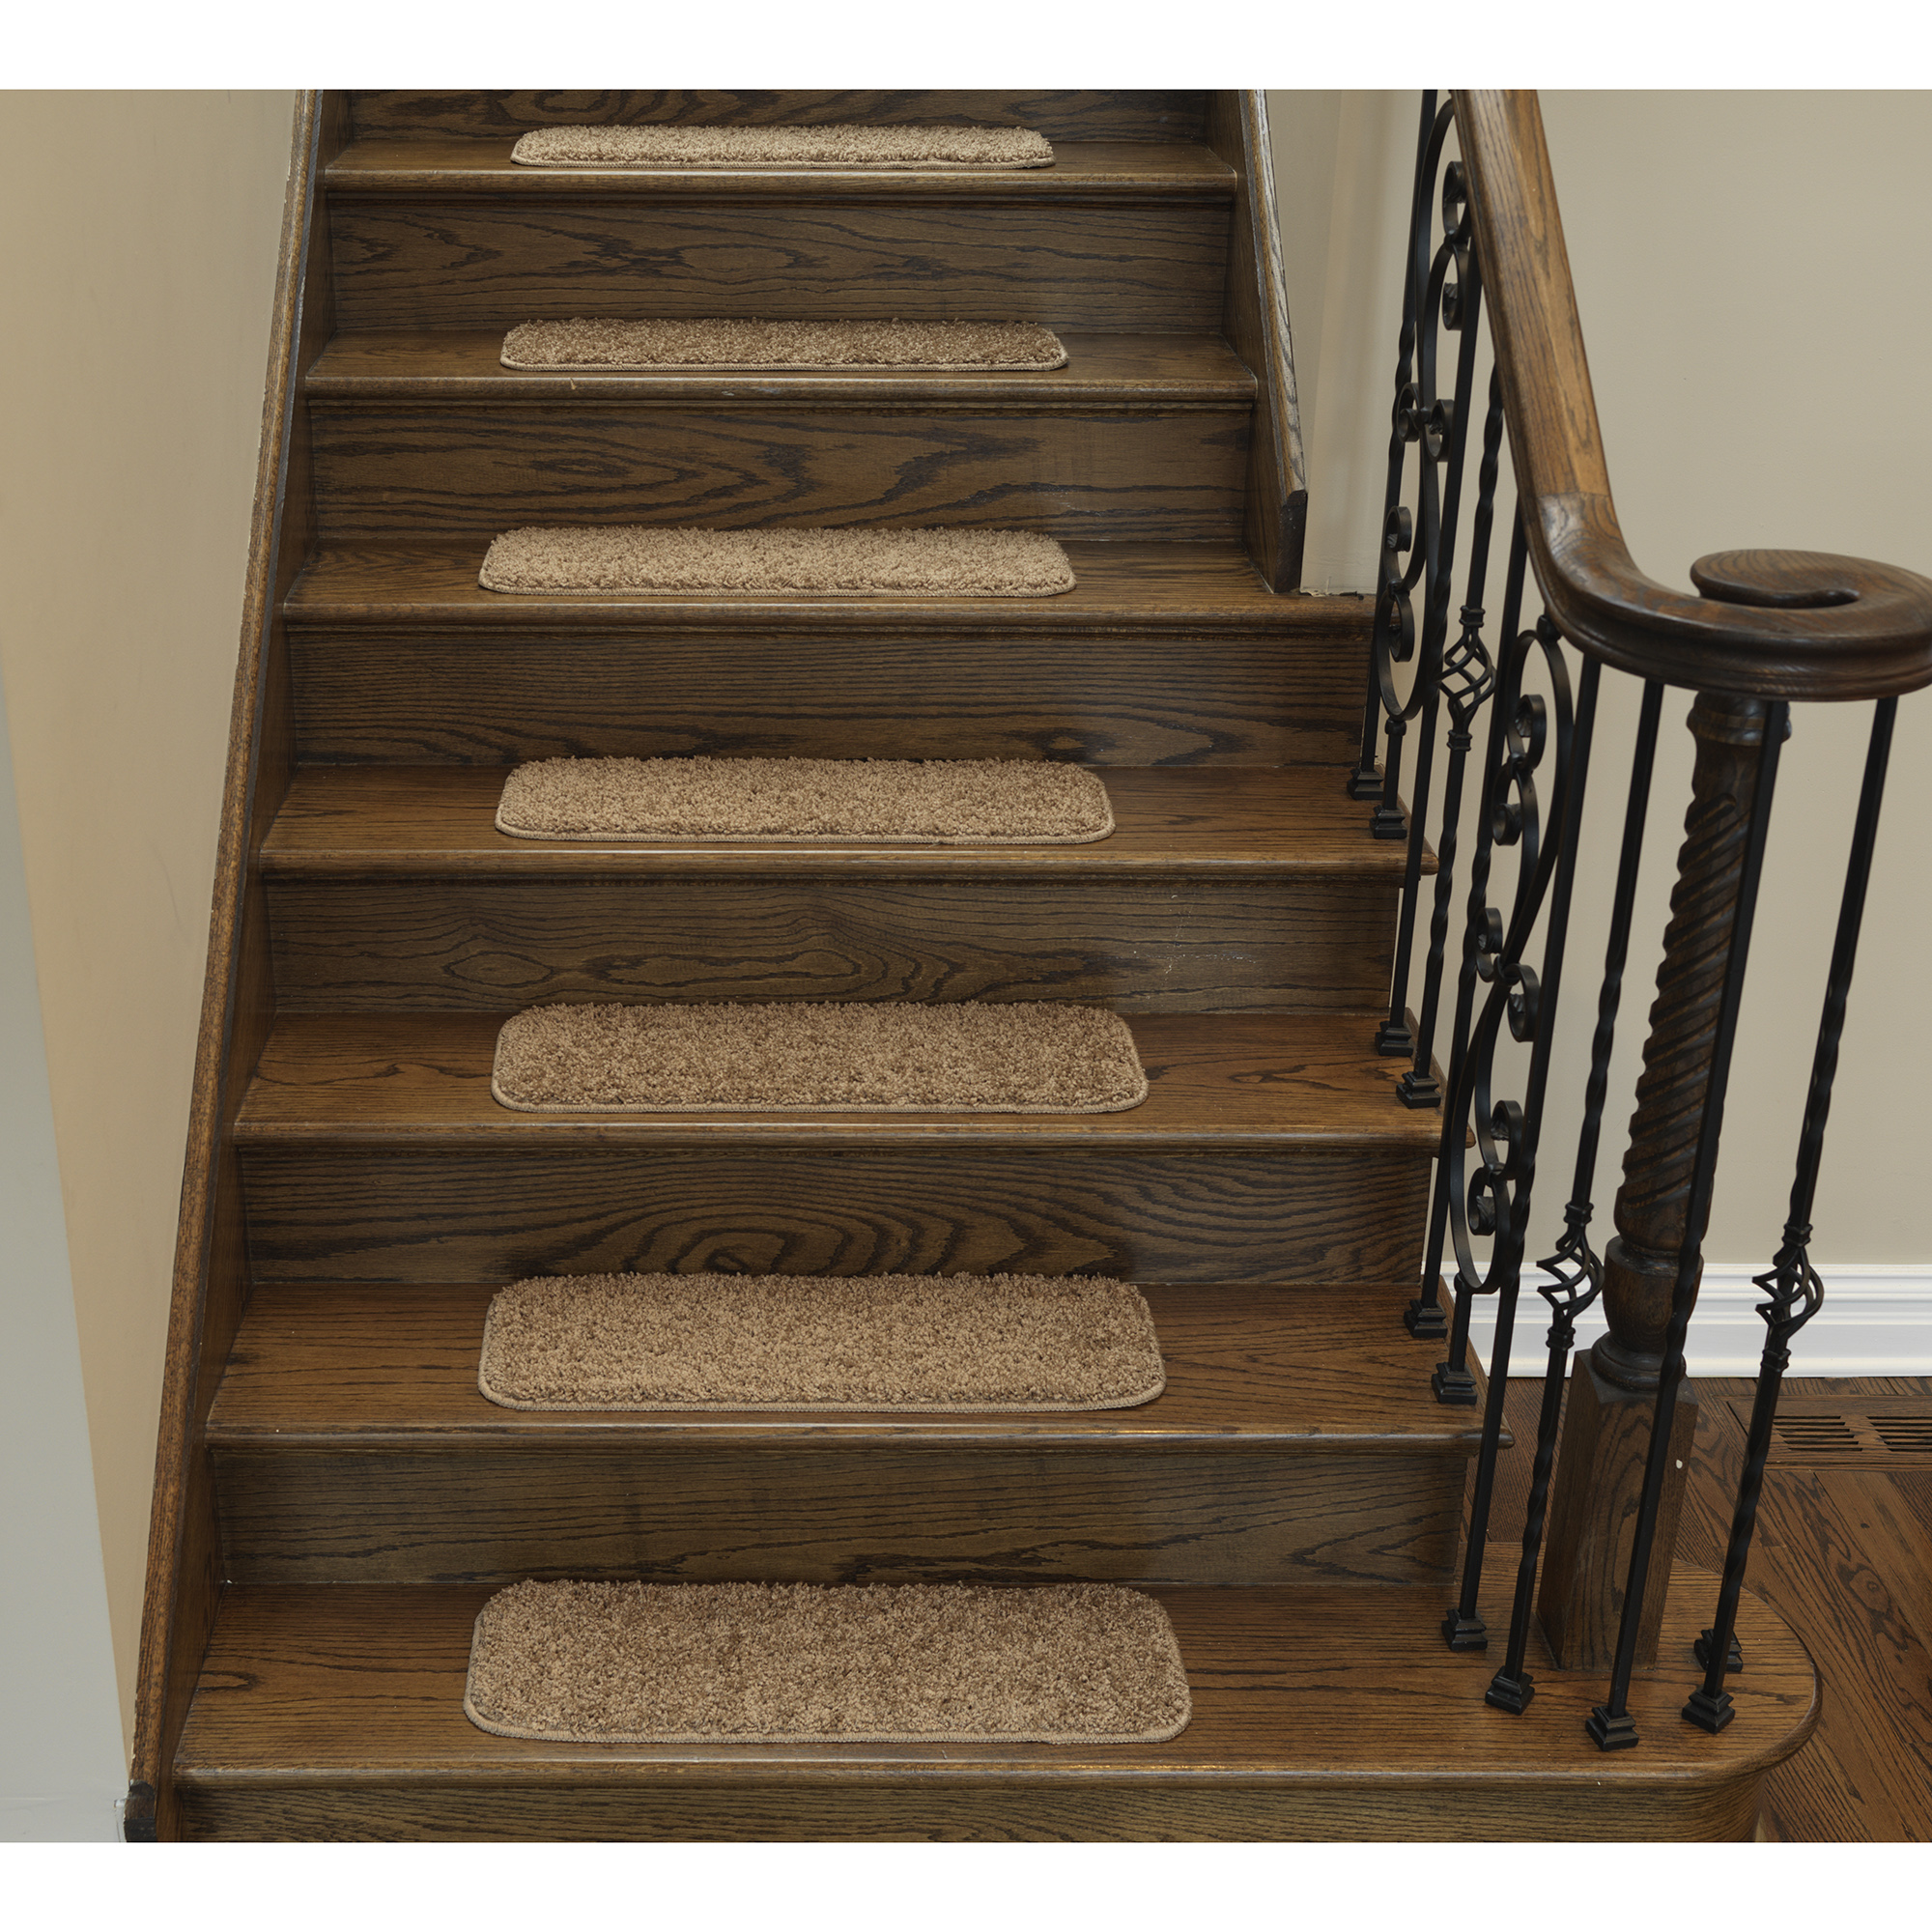 ottomanson comfort collection soft solid nonslip shag carpet stair treads 7 pack